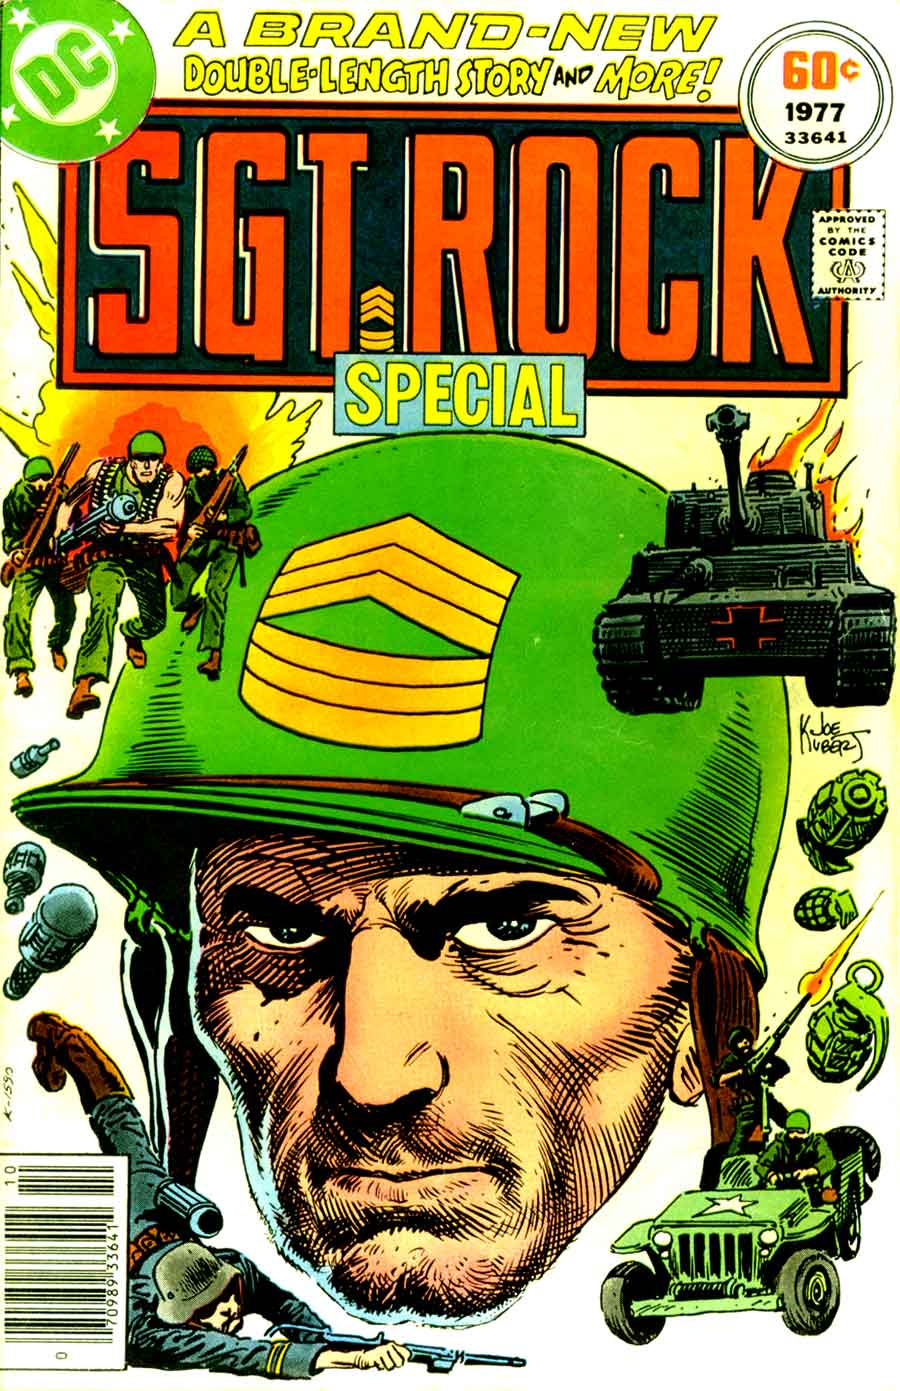 Sgt. Rock Special #3 (1977) from DC comics. Cover by Joe Kubert.